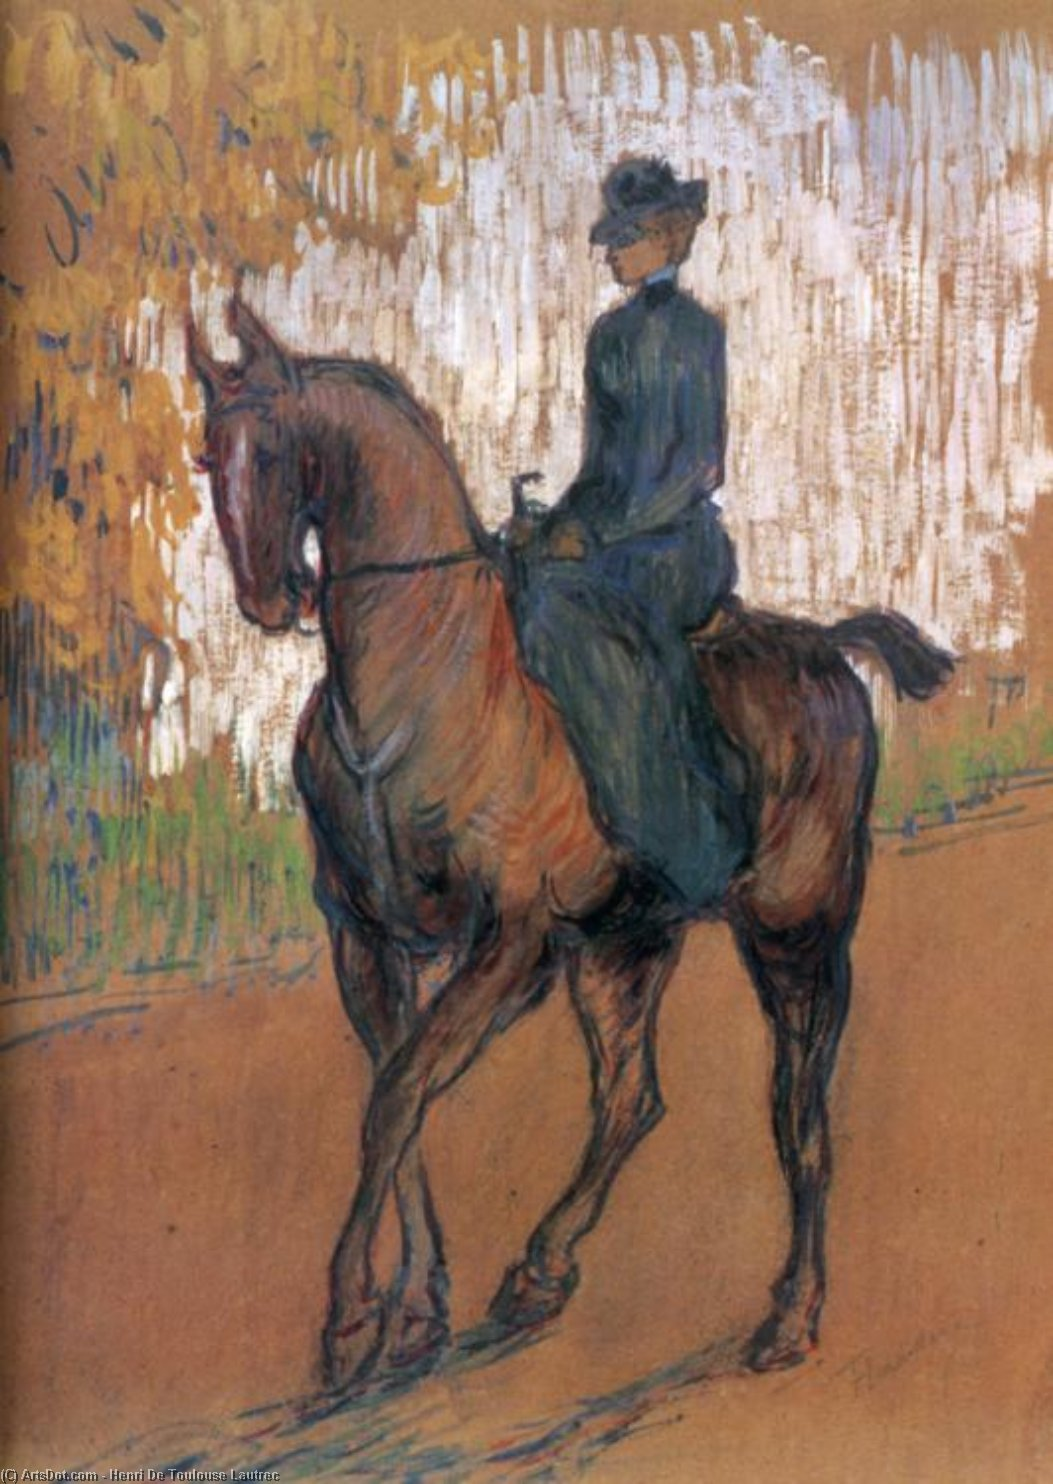 Amazone, Oil by Henri De Toulouse Lautrec (1864-1901, France)